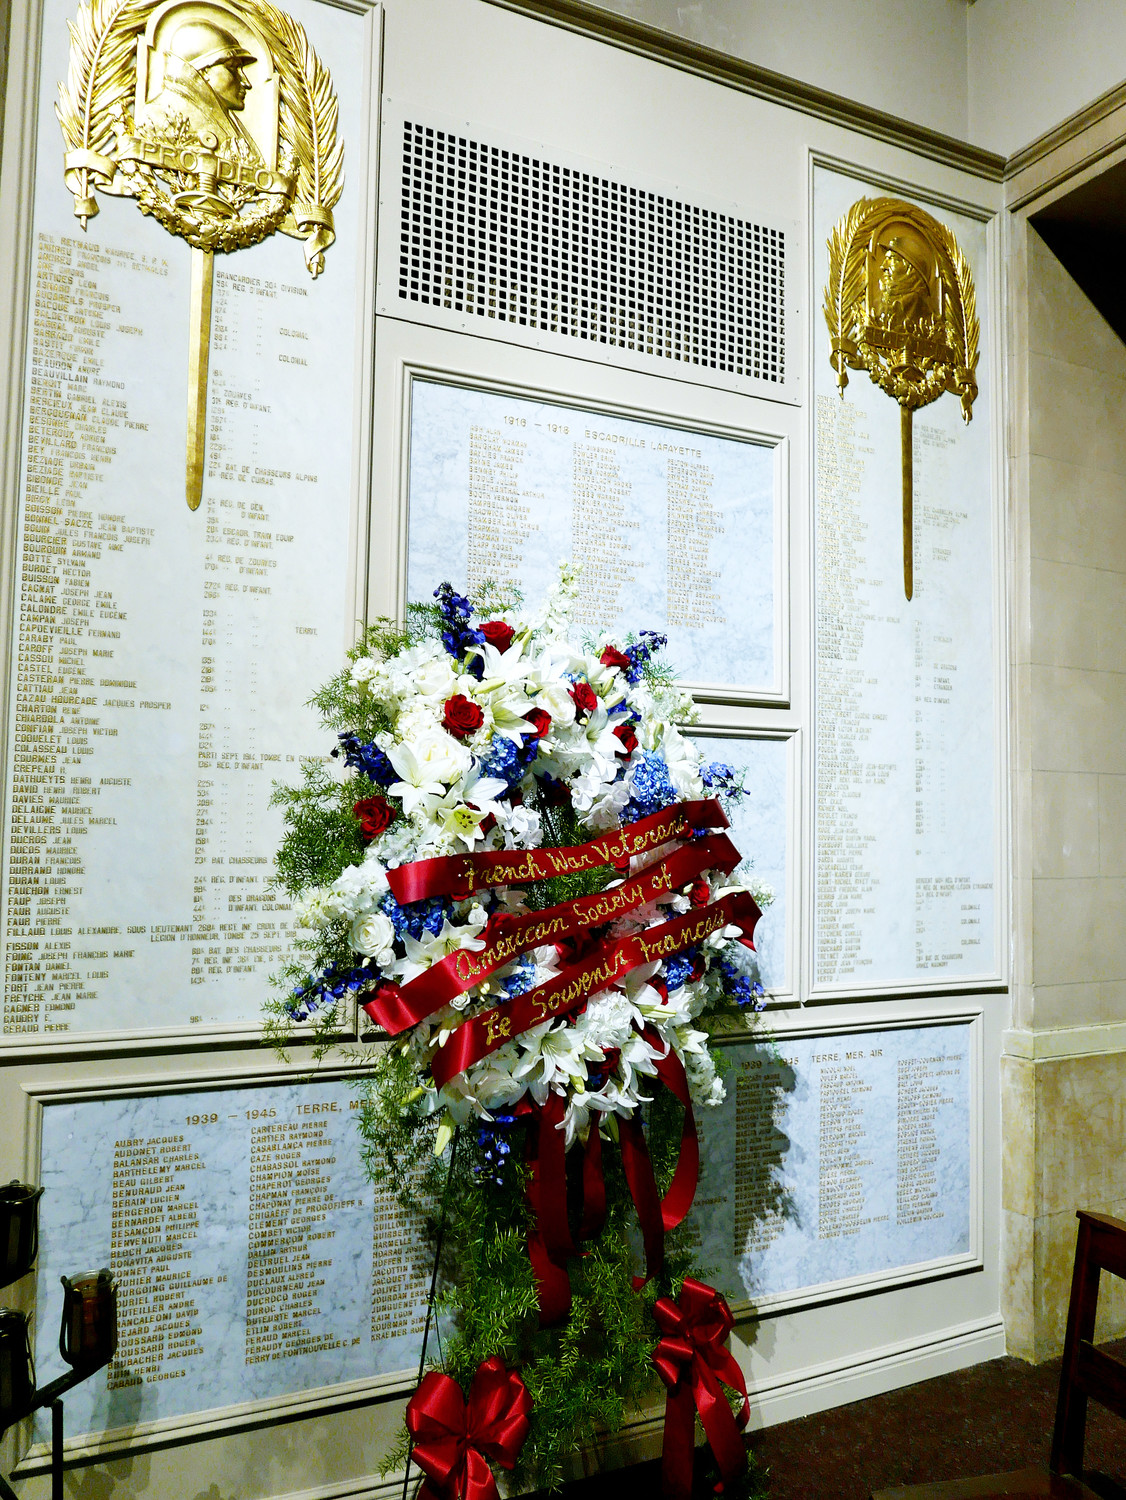 A Veterans Day ceremony at Notre Dame Church in Manhattan included the laying of a special wreath in front of recently installed plaques bearing the names of French and American soldiers and volunteers who died while serving in France during the two World Wars.